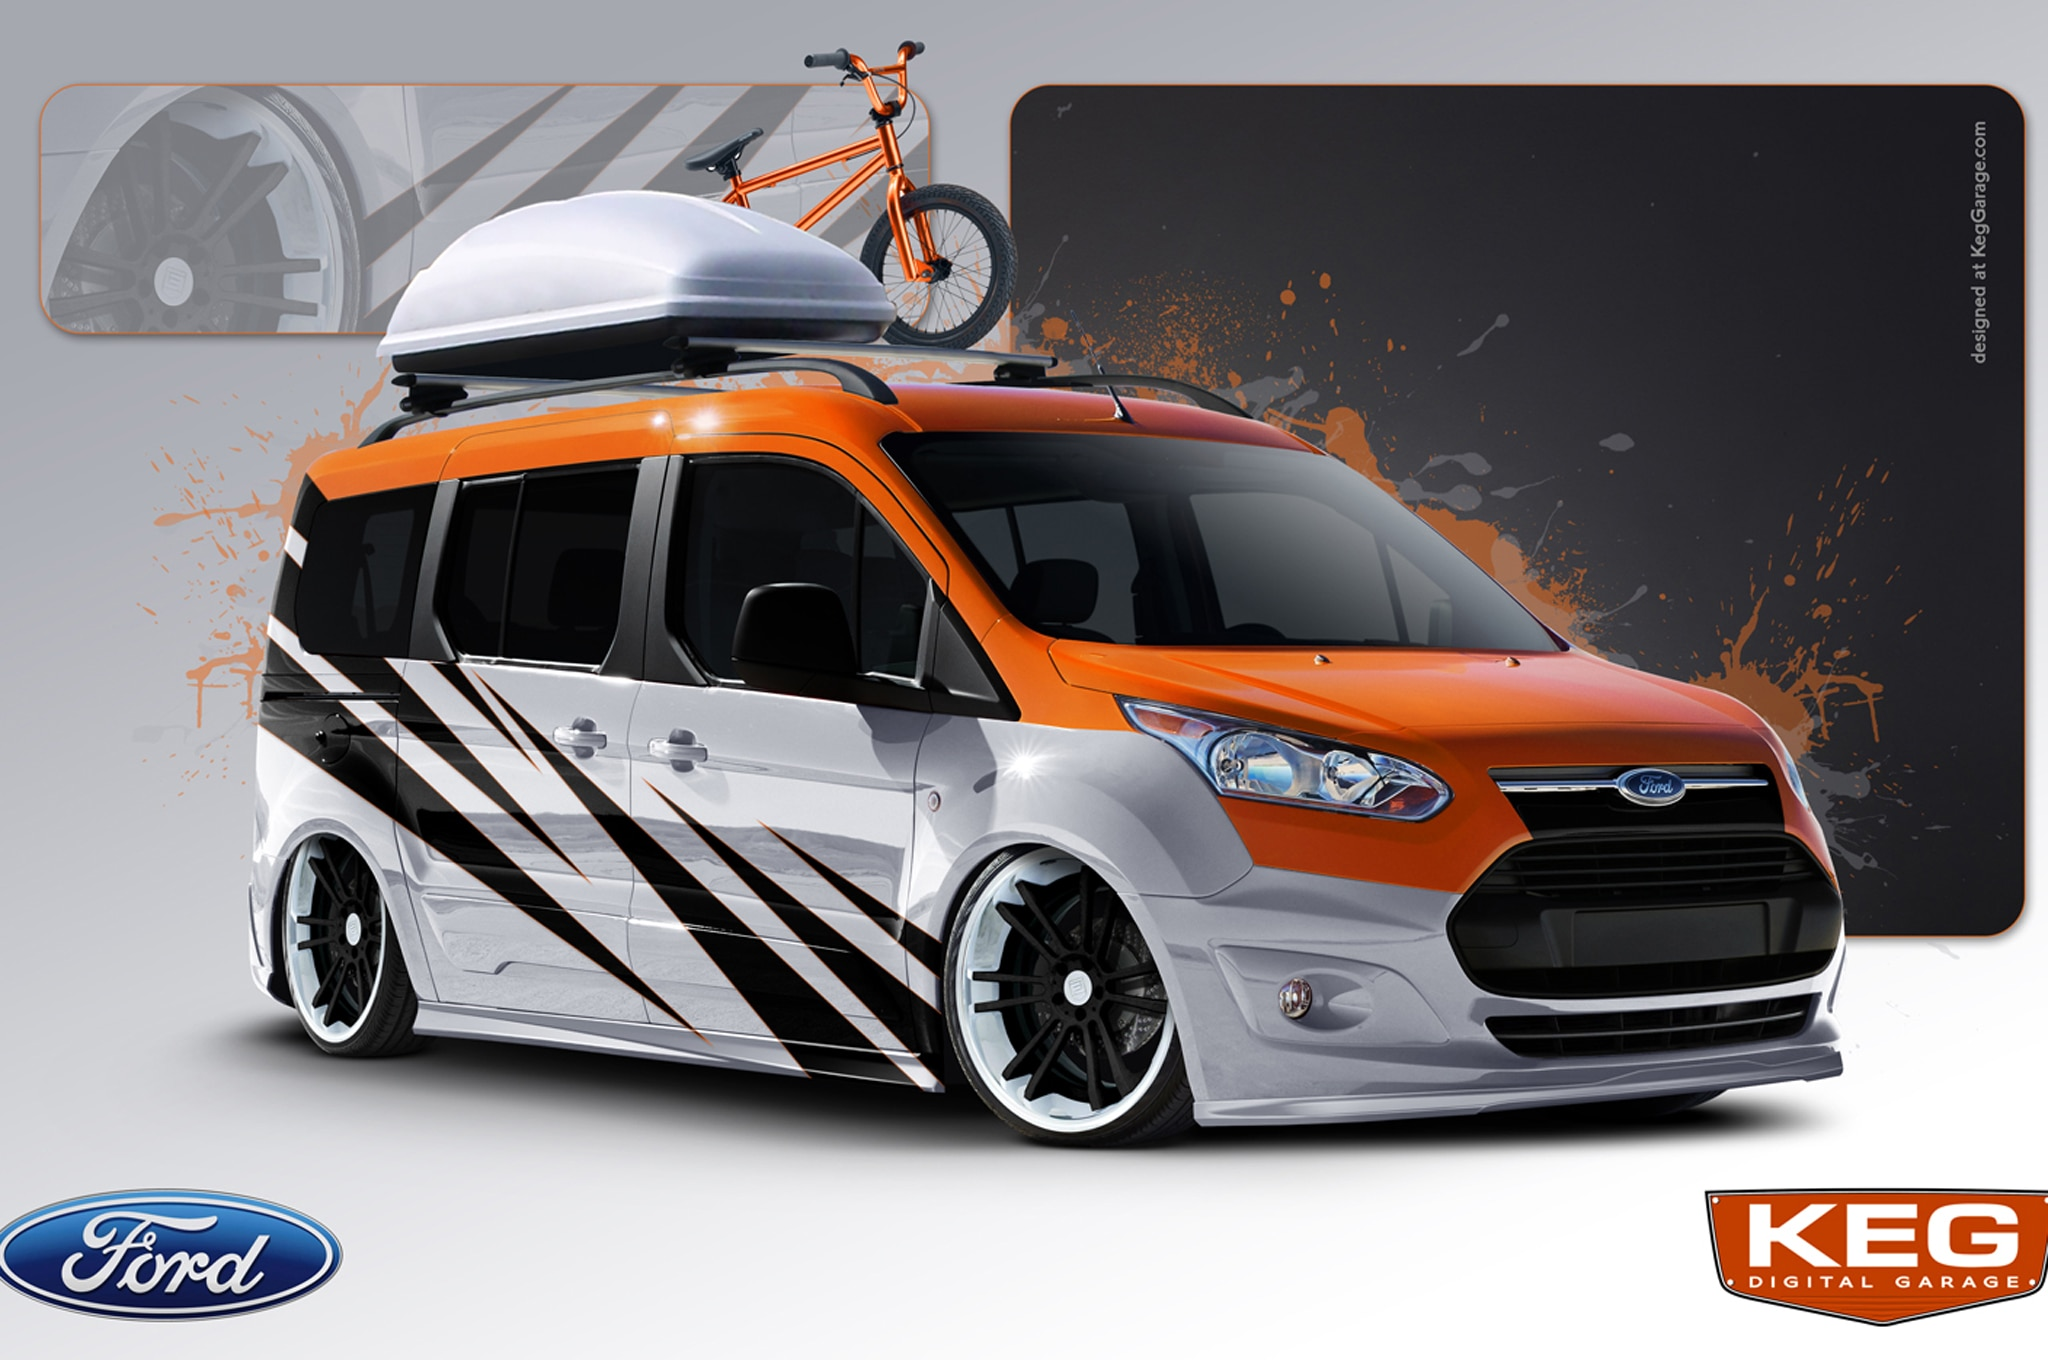 66f41cfc399c ... modified 2014 Ford Transit Connect vans will be on display at the 2013  SEMA show starting Tuesday